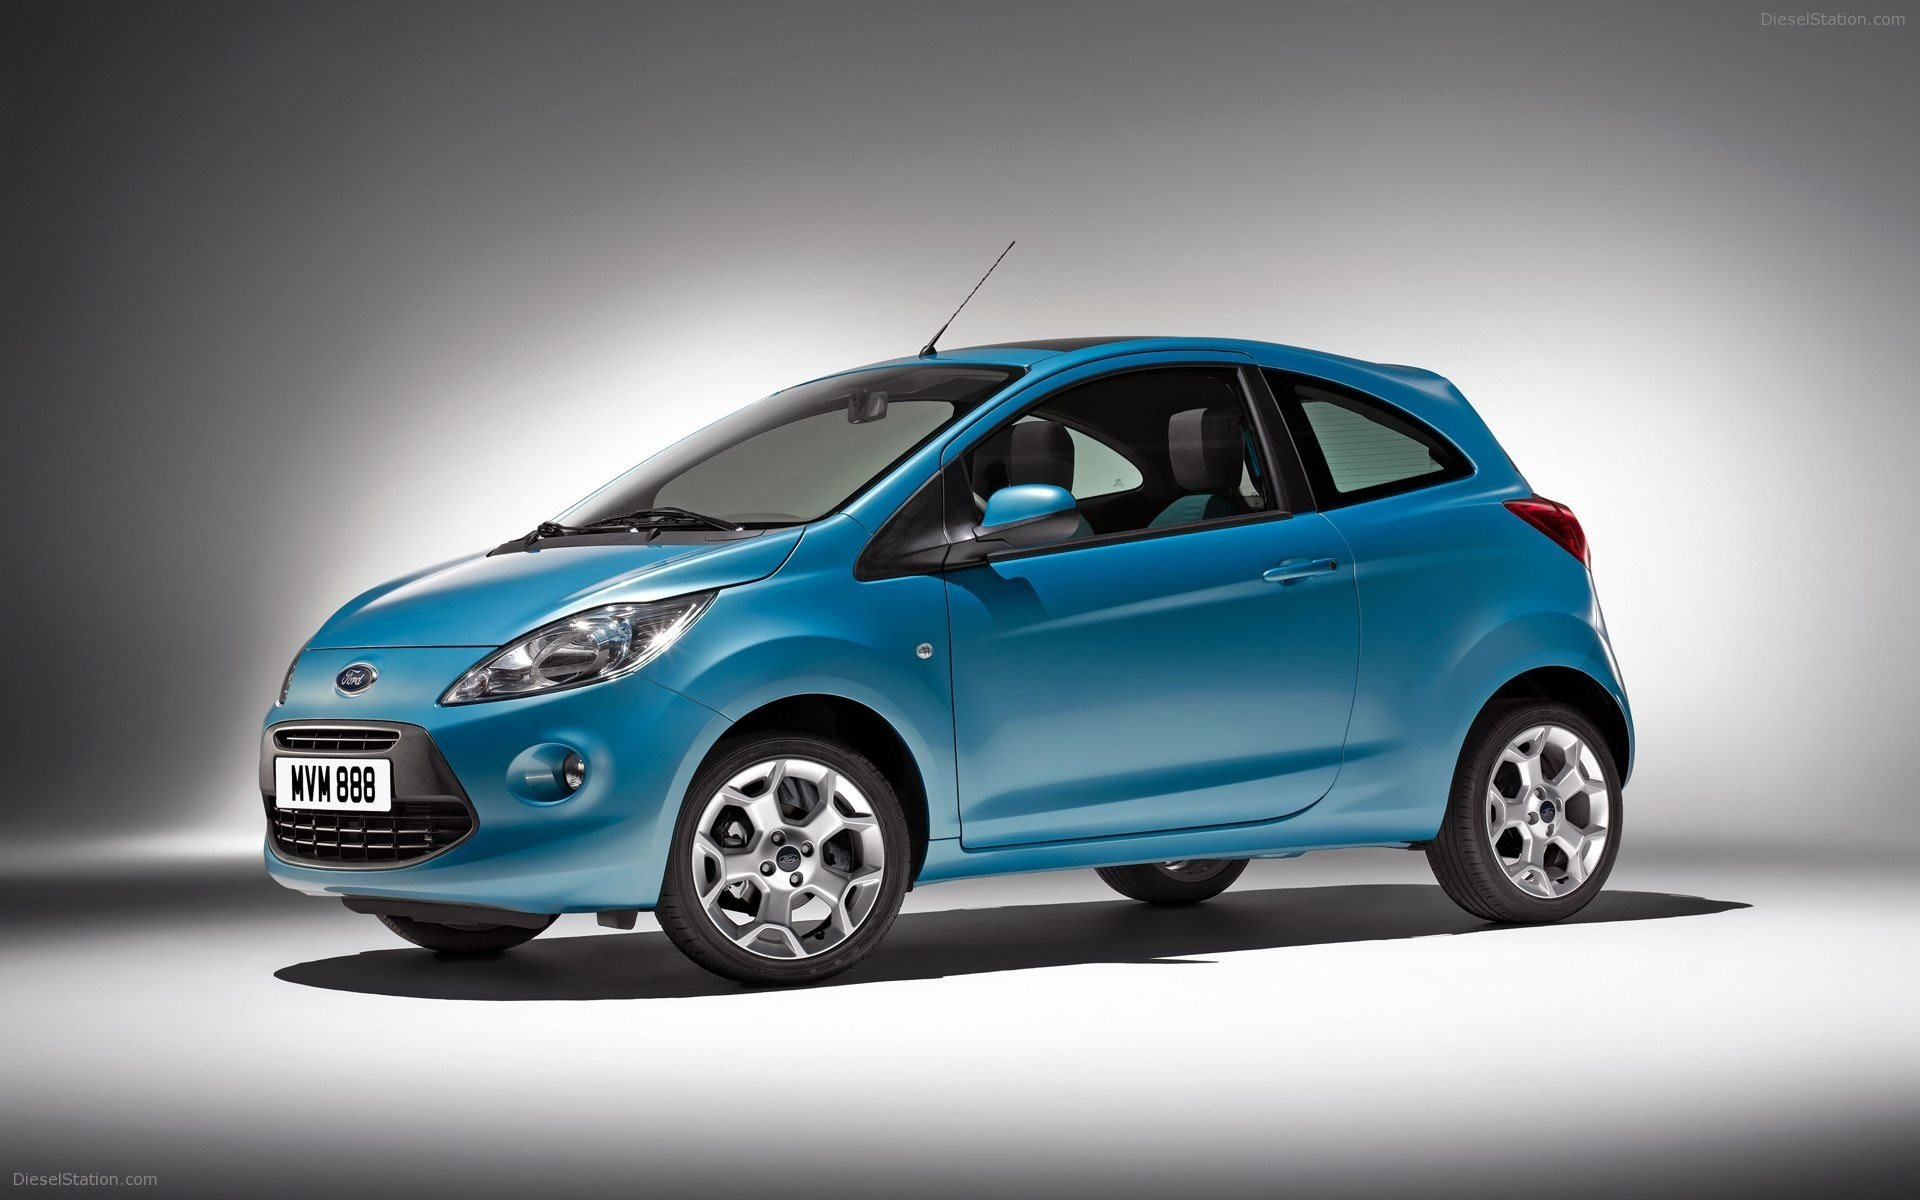 Latest Ford Ka 2008 Widescreen Exotic Car Wallpaper 03 Of 6 Free Download